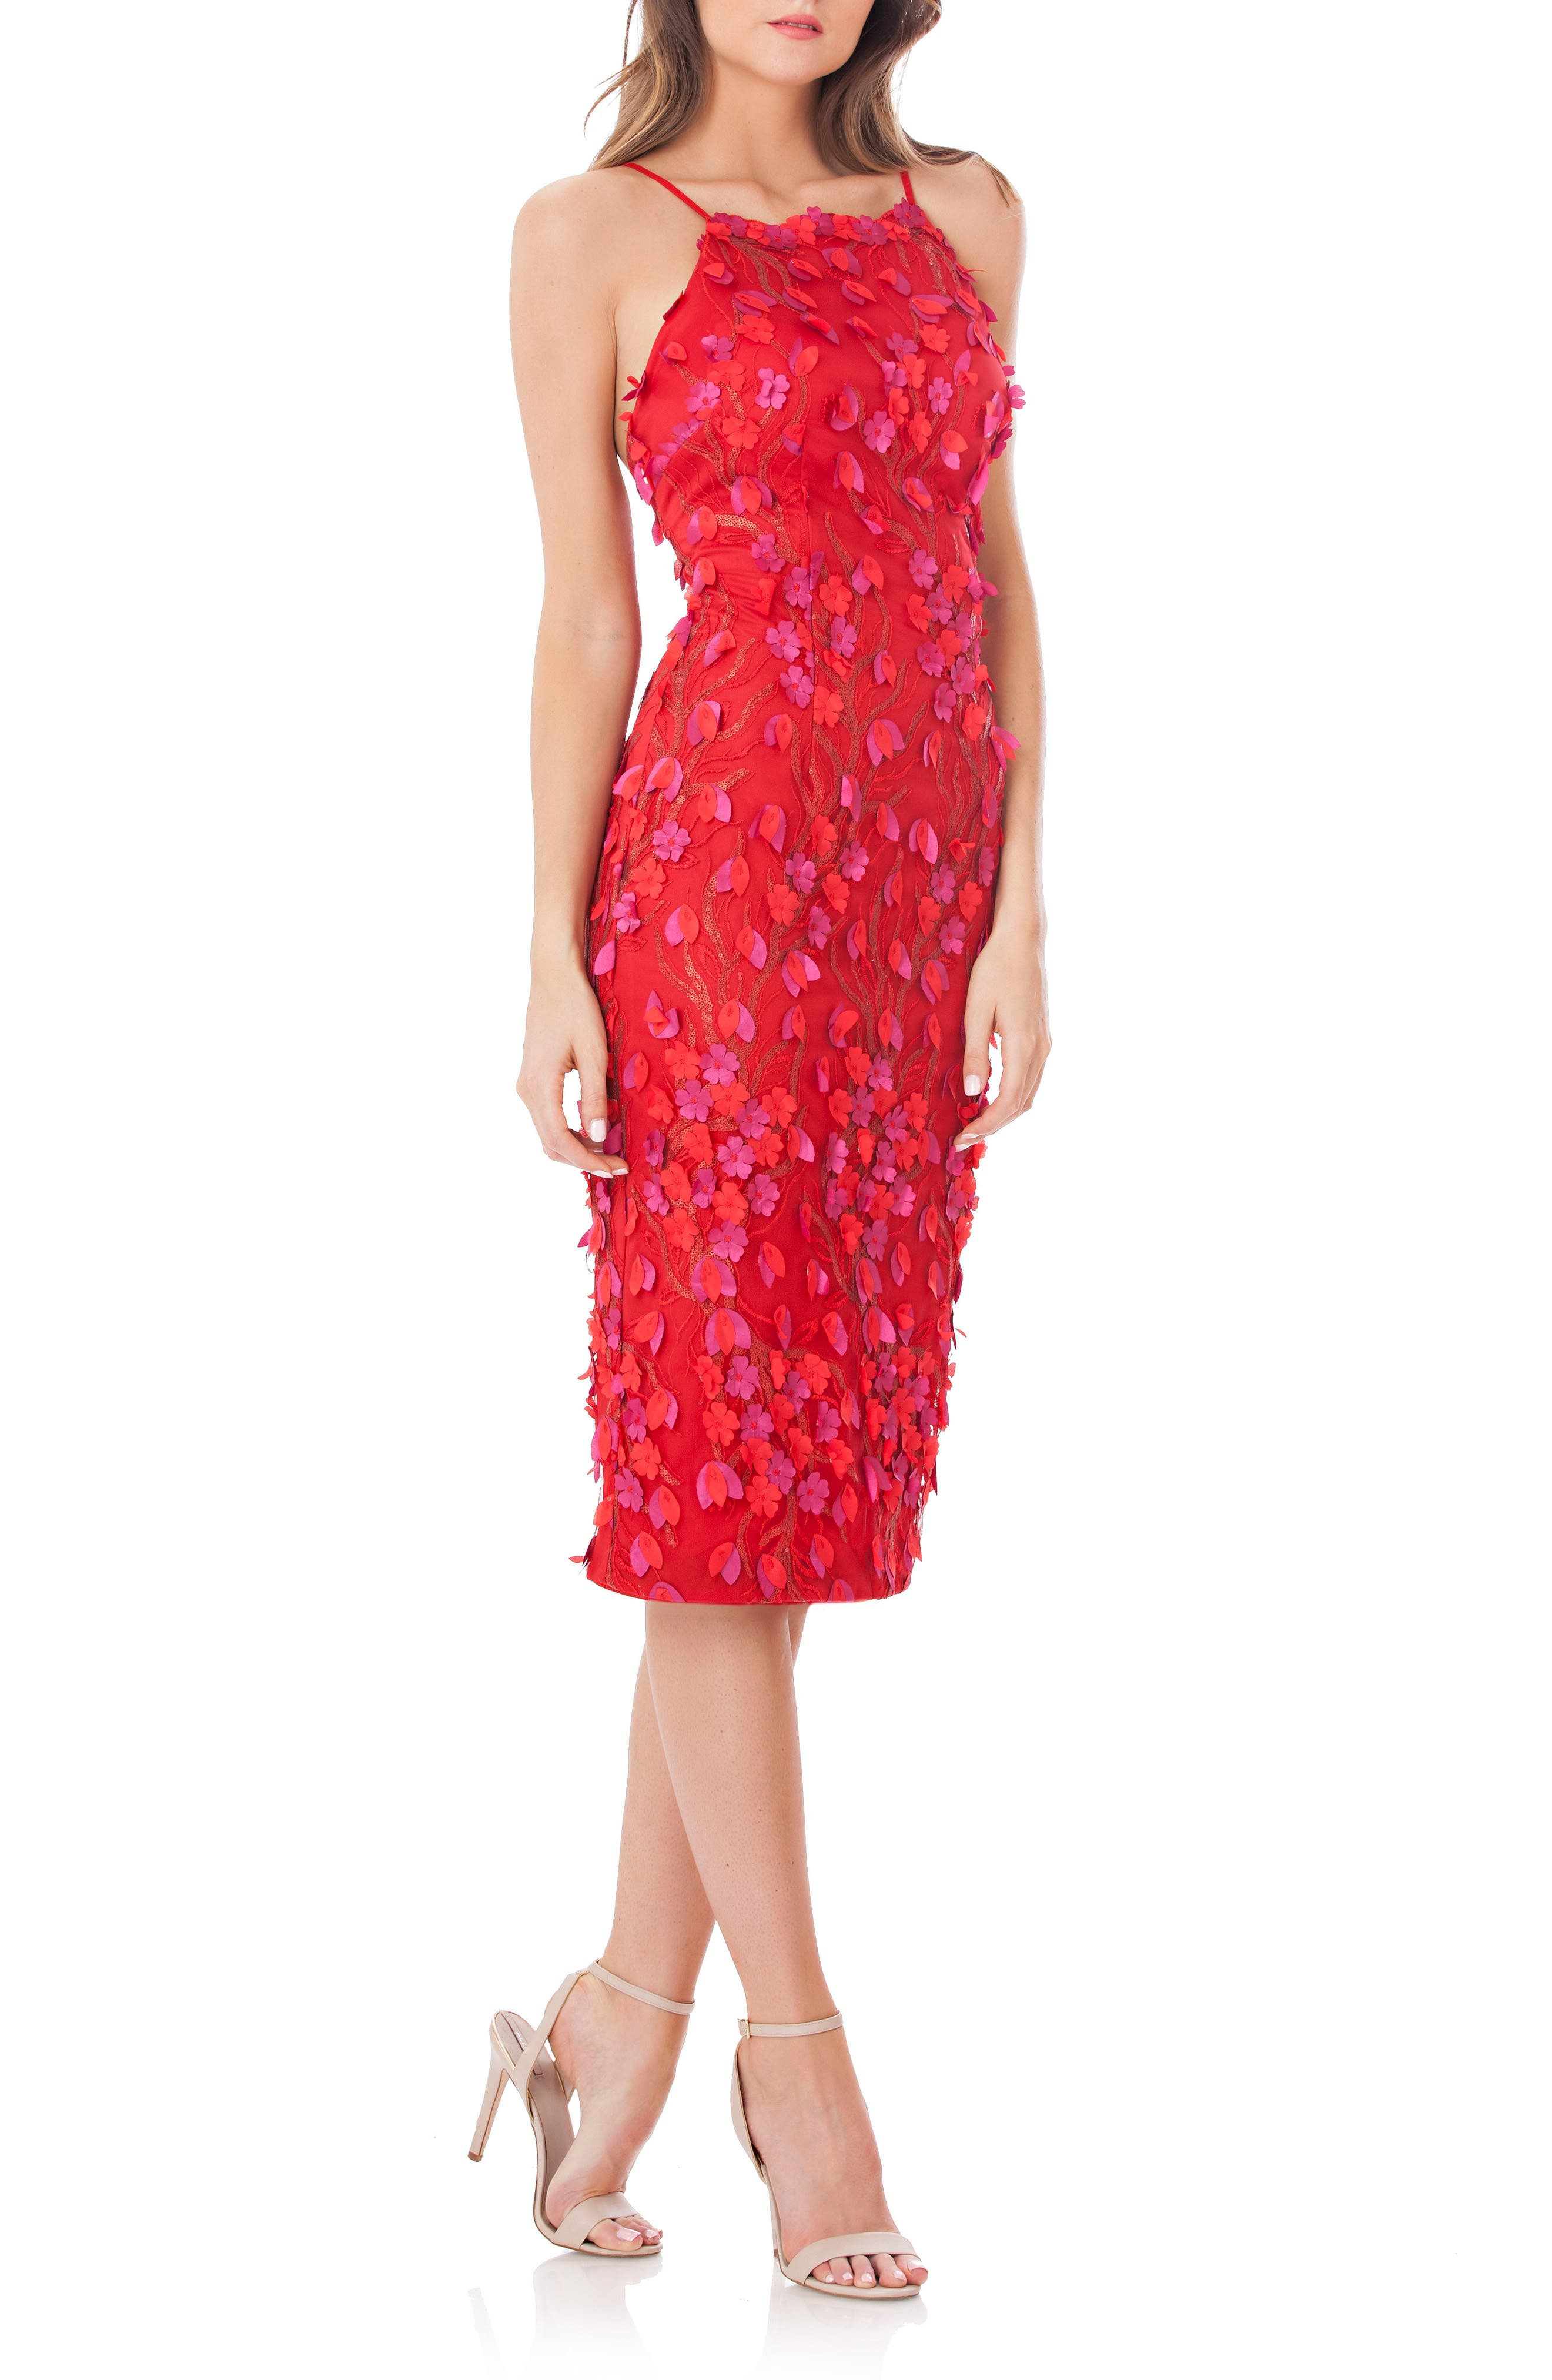 Petals Embellished Halter Neck Sheath Dress,                         Main,                         color, Red